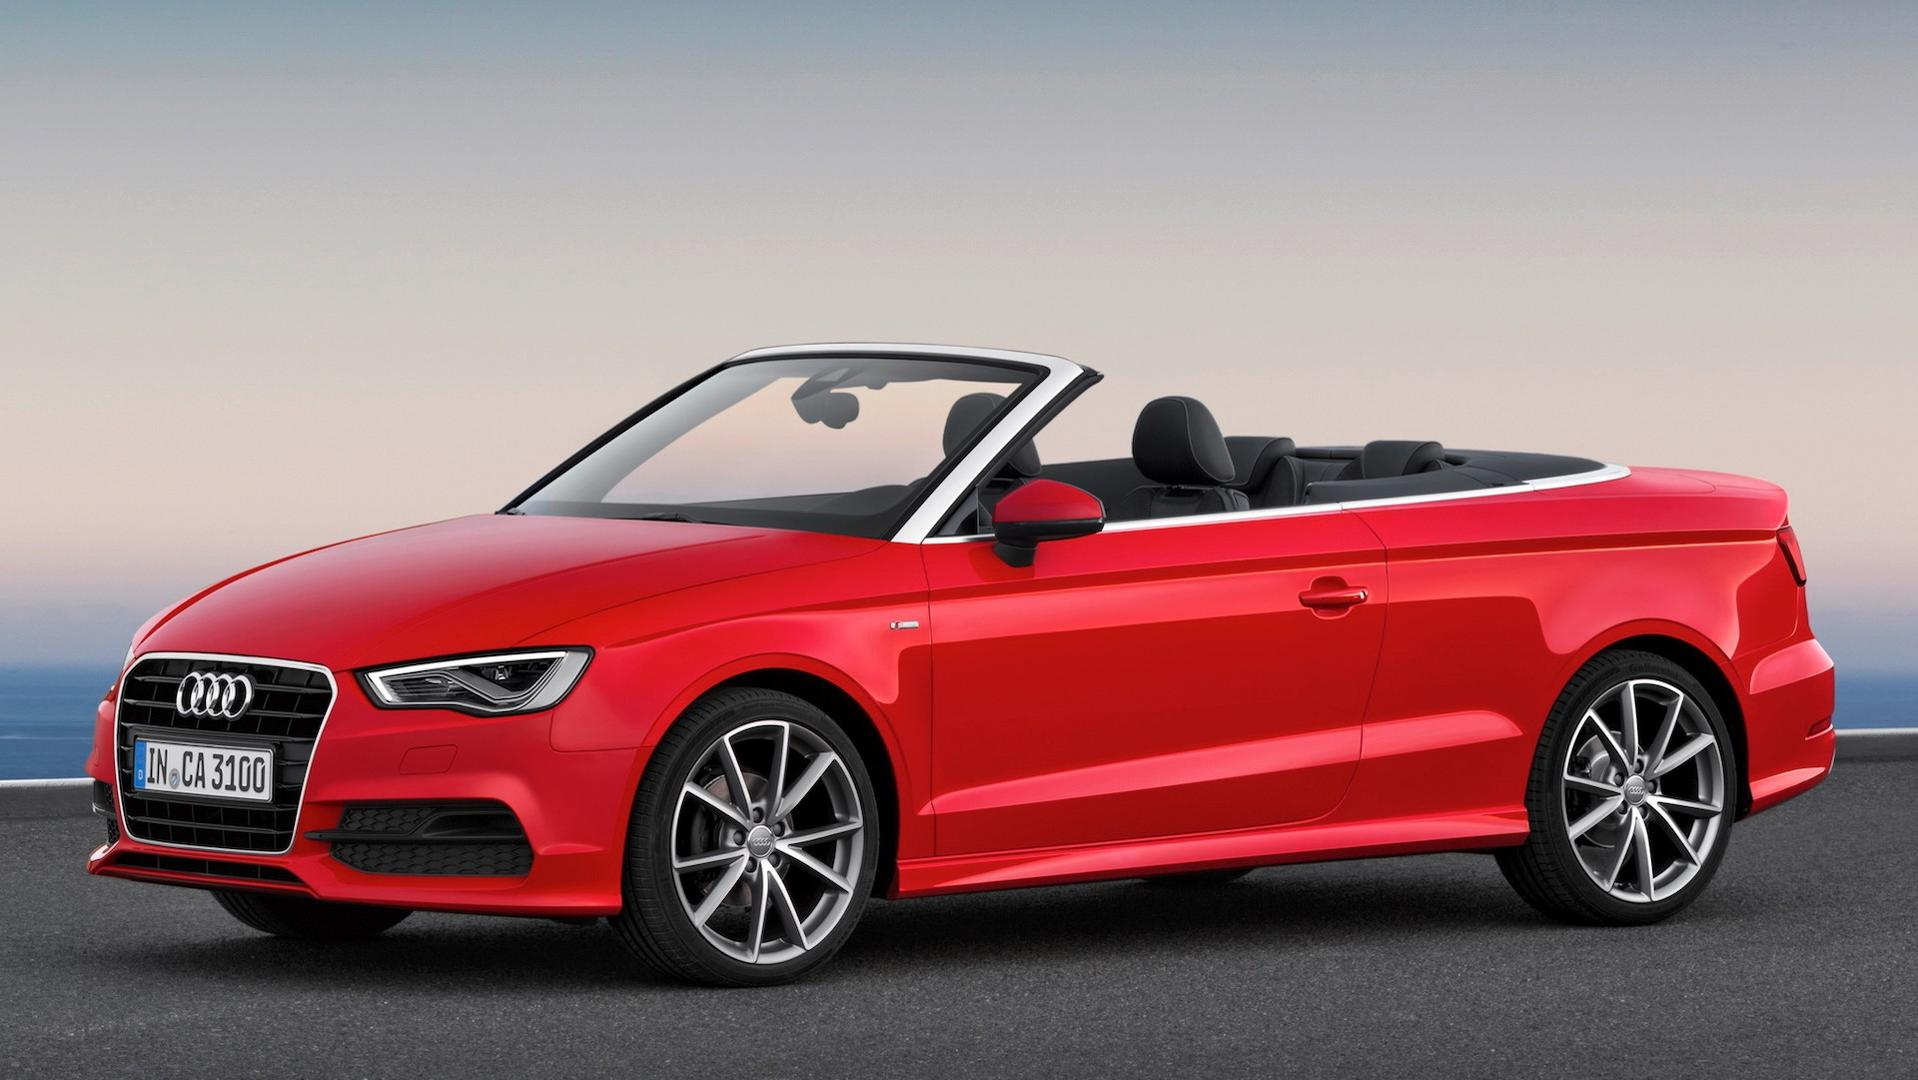 Audi A3 Cabriolet Reportedly Getting Axe From American Market